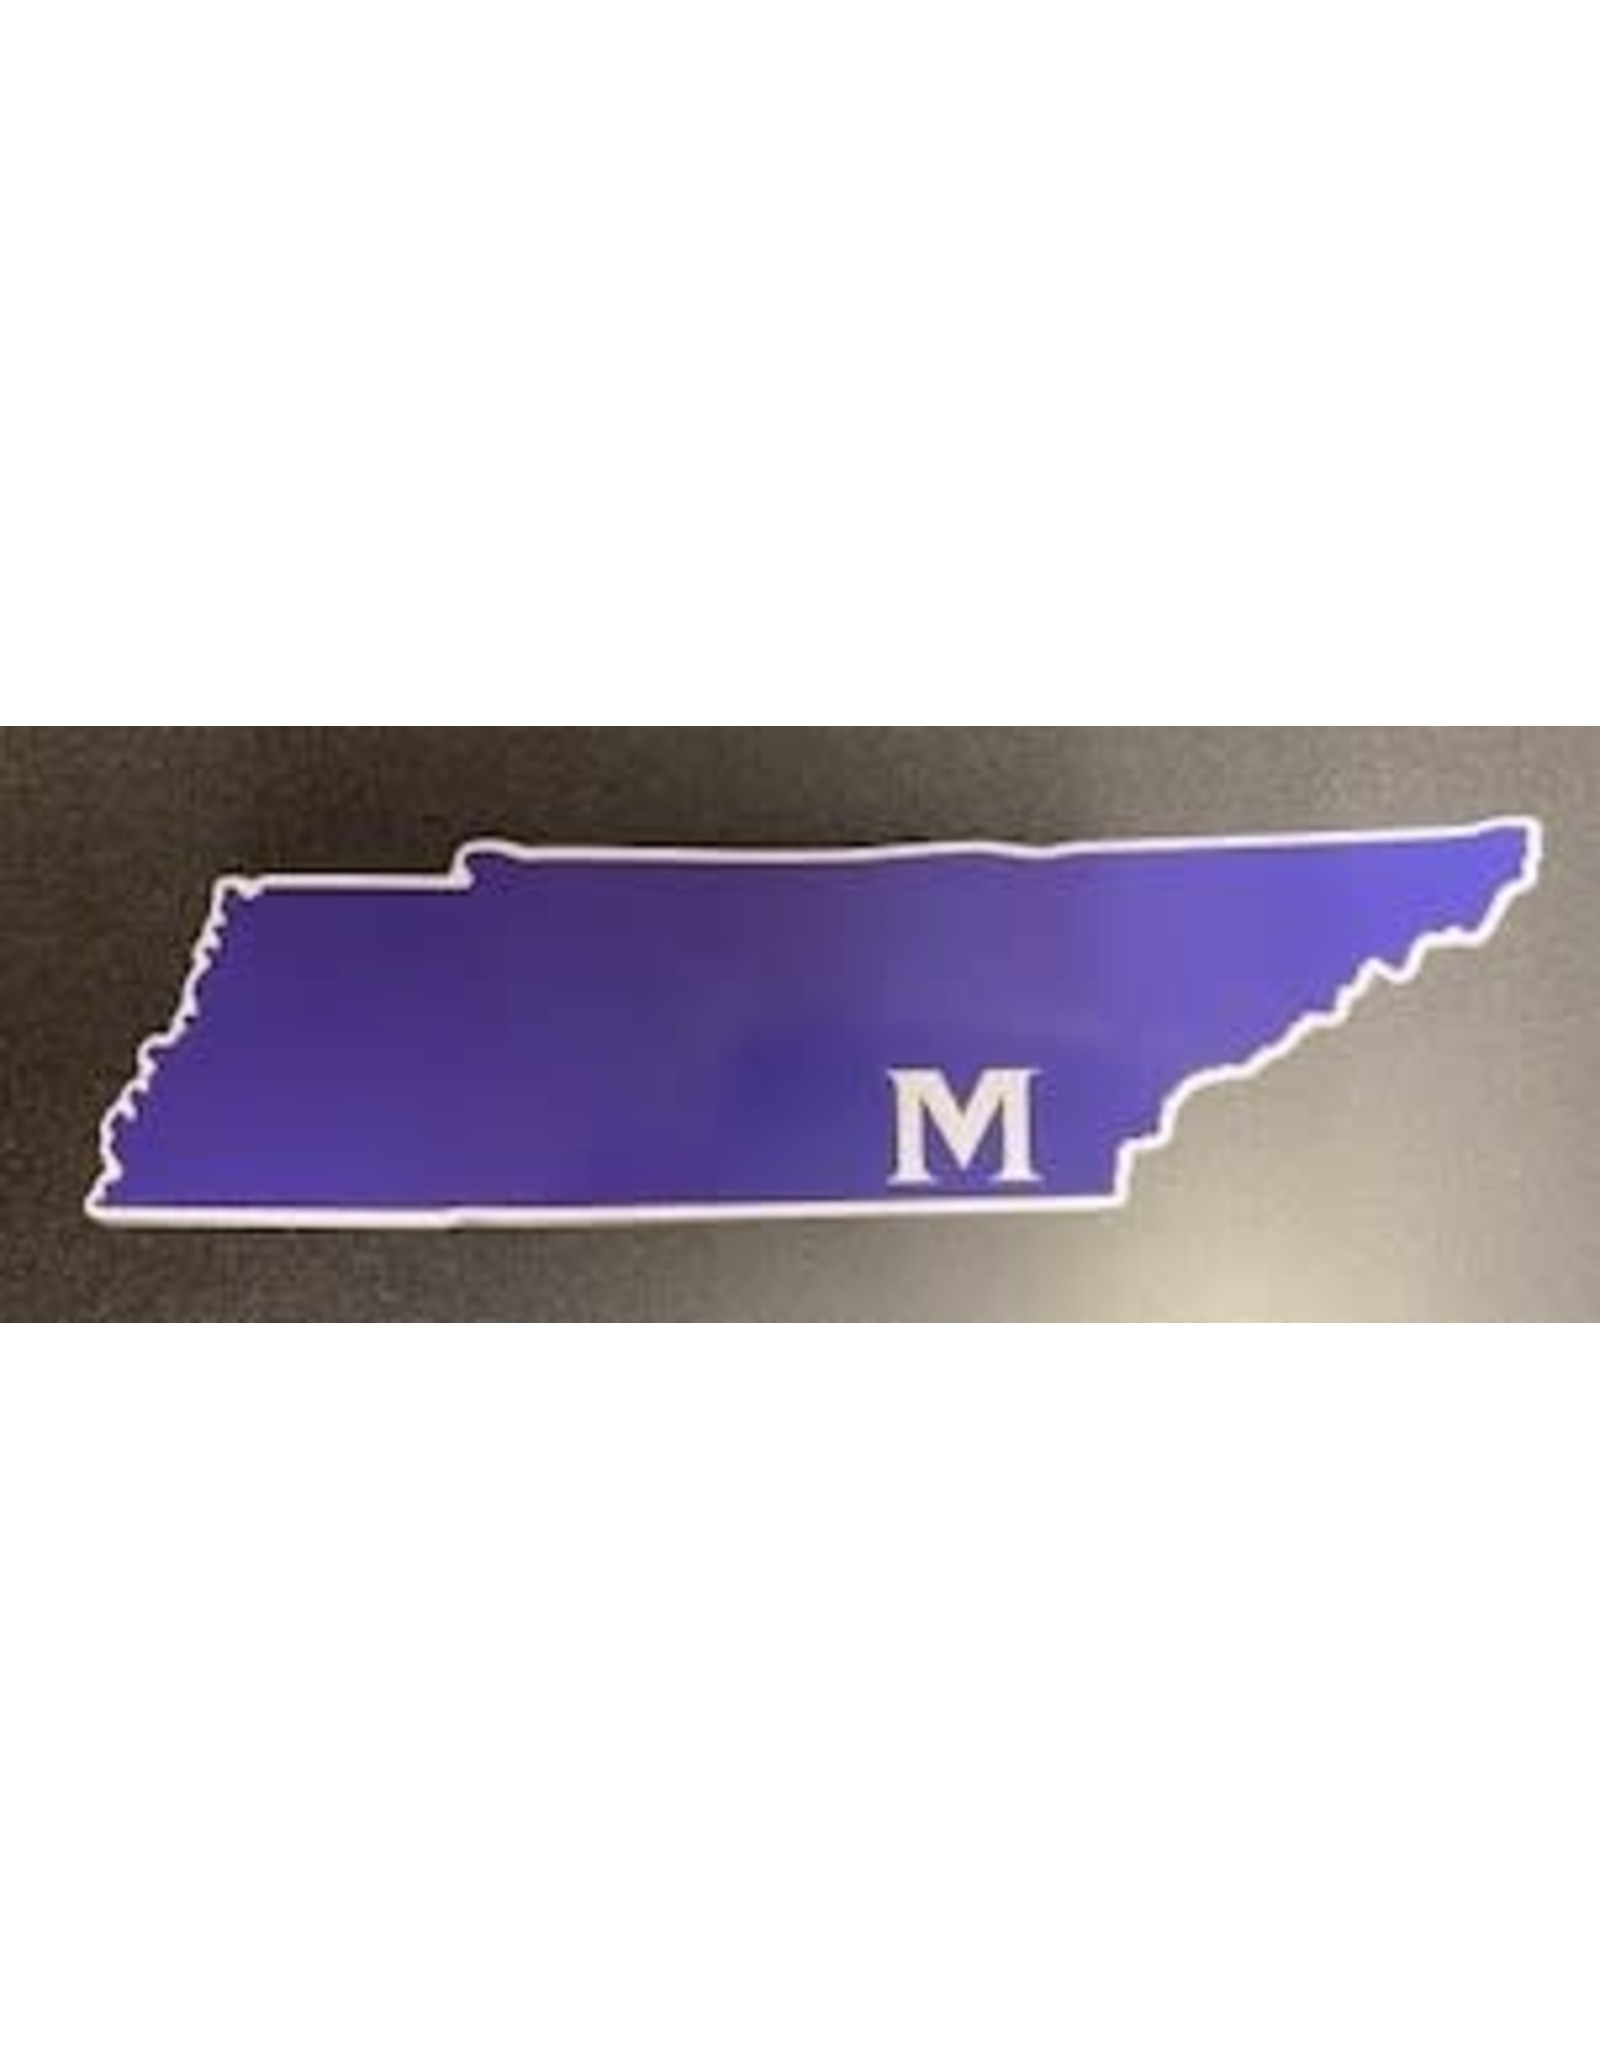 TENNESSEE M CAR MAGNET